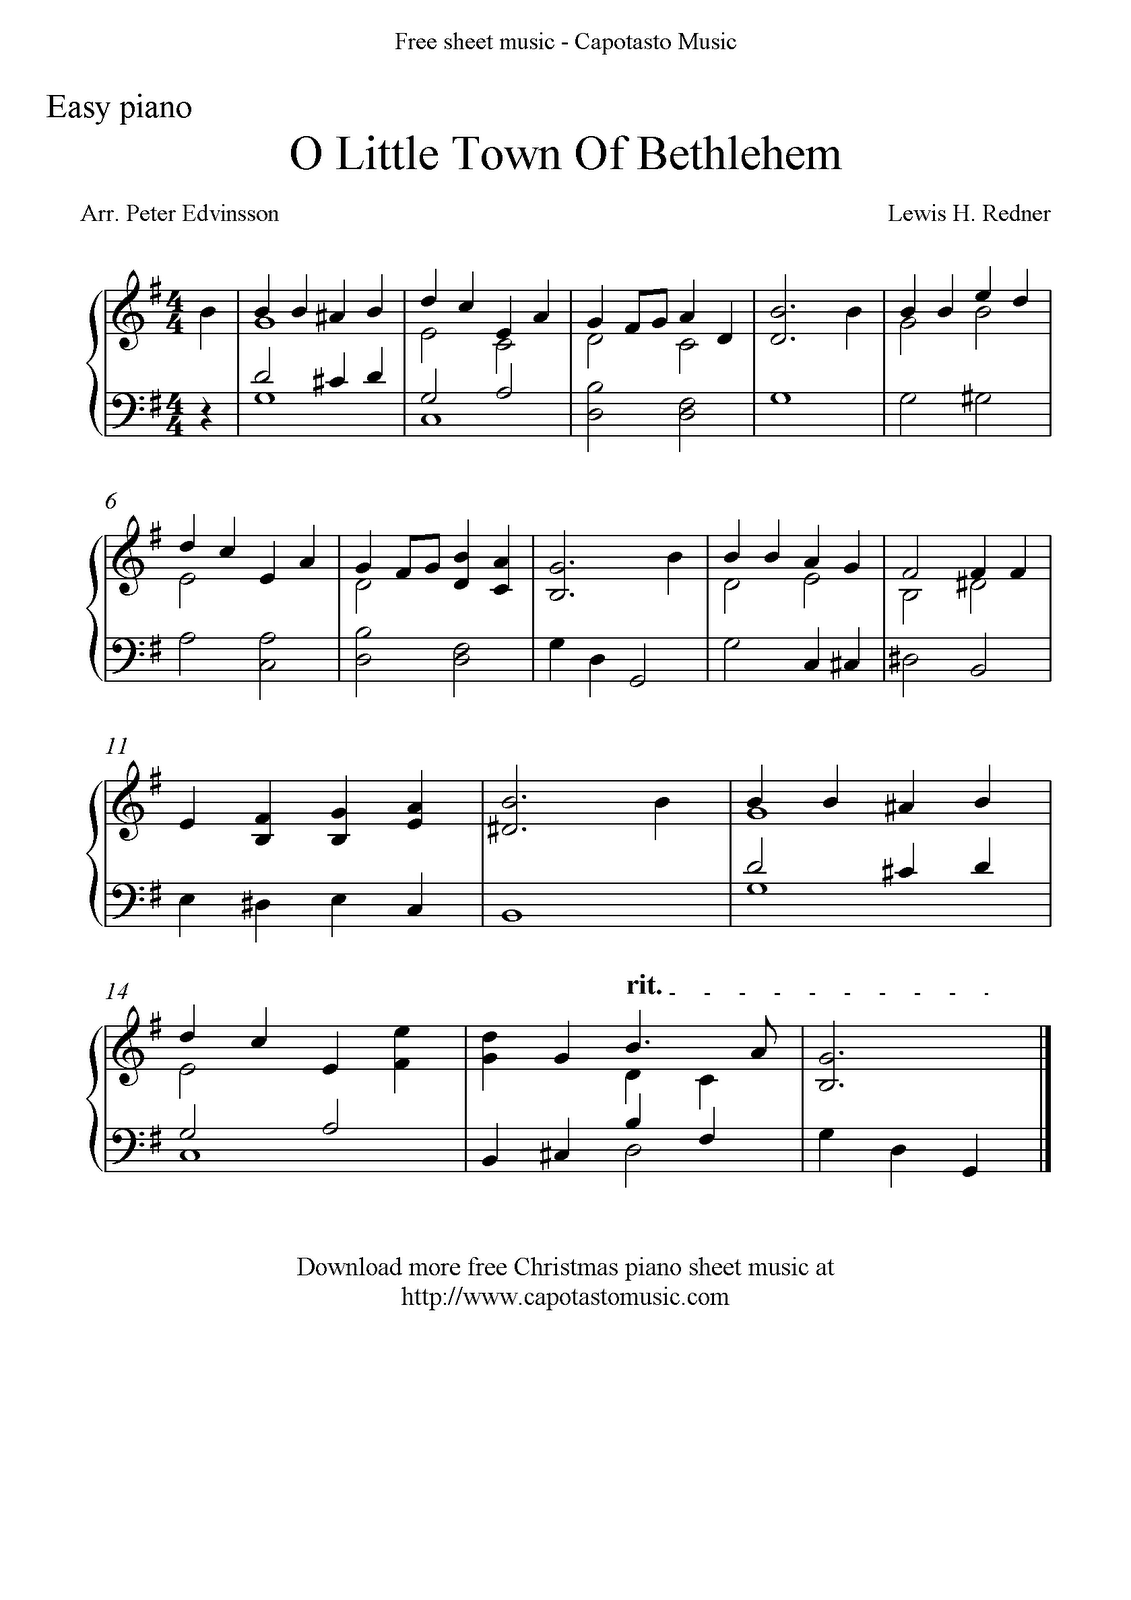 easy piano solo arrangement by peter edvinsson of the christmas carol o little town of bethlehem - Free Christmas Piano Sheet Music